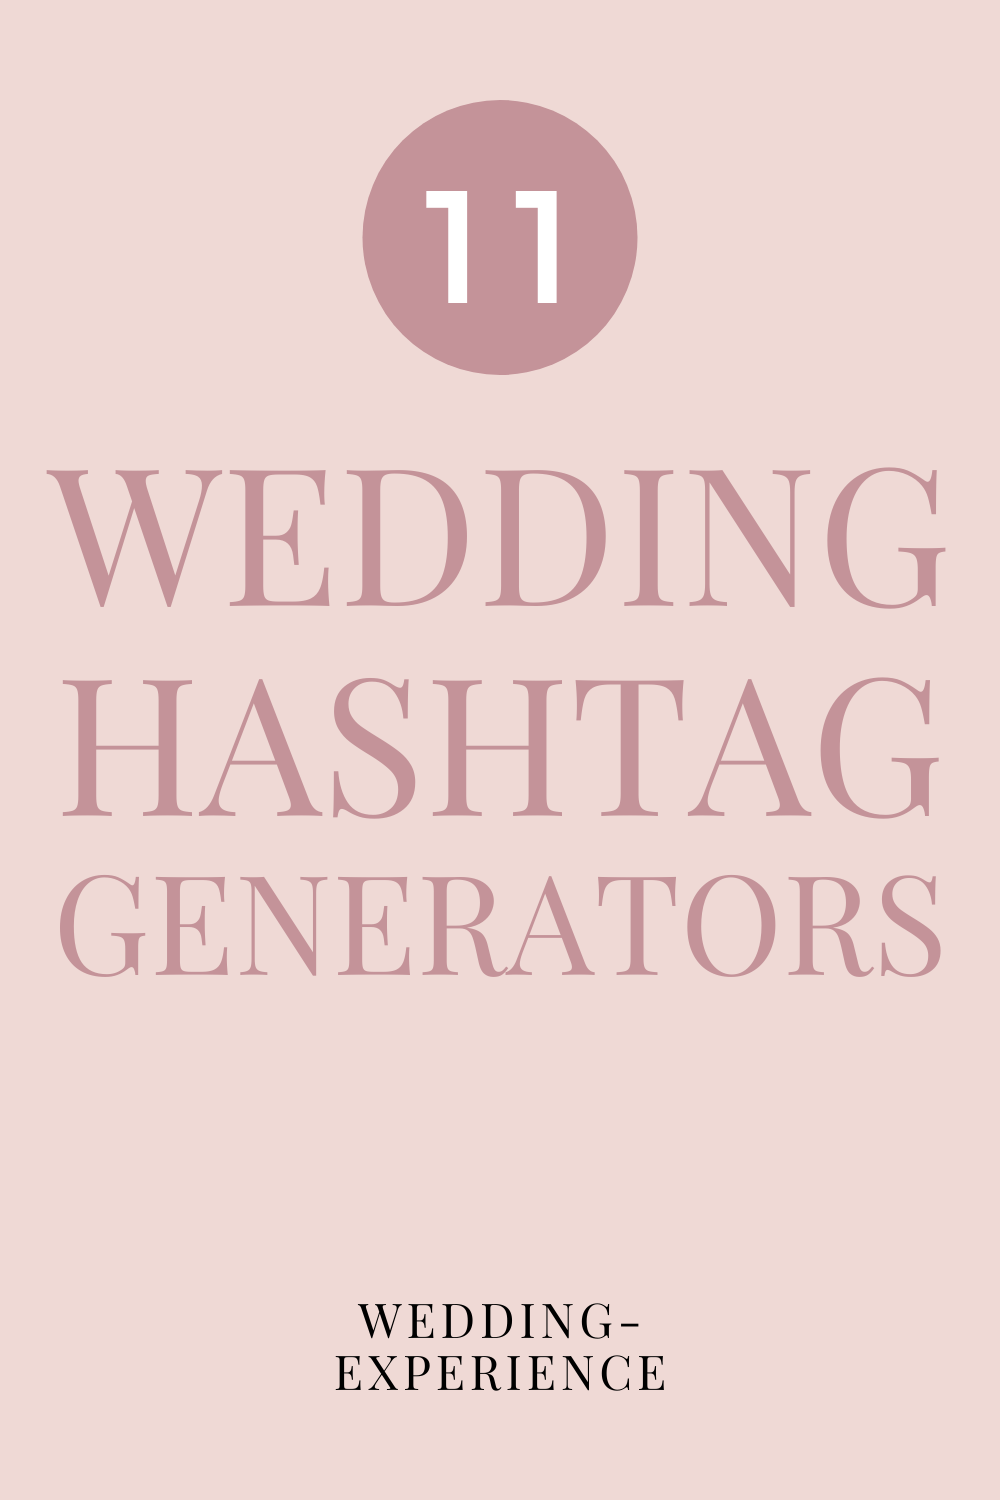 Generate hundreds of wedding hashtag ideas with these 11